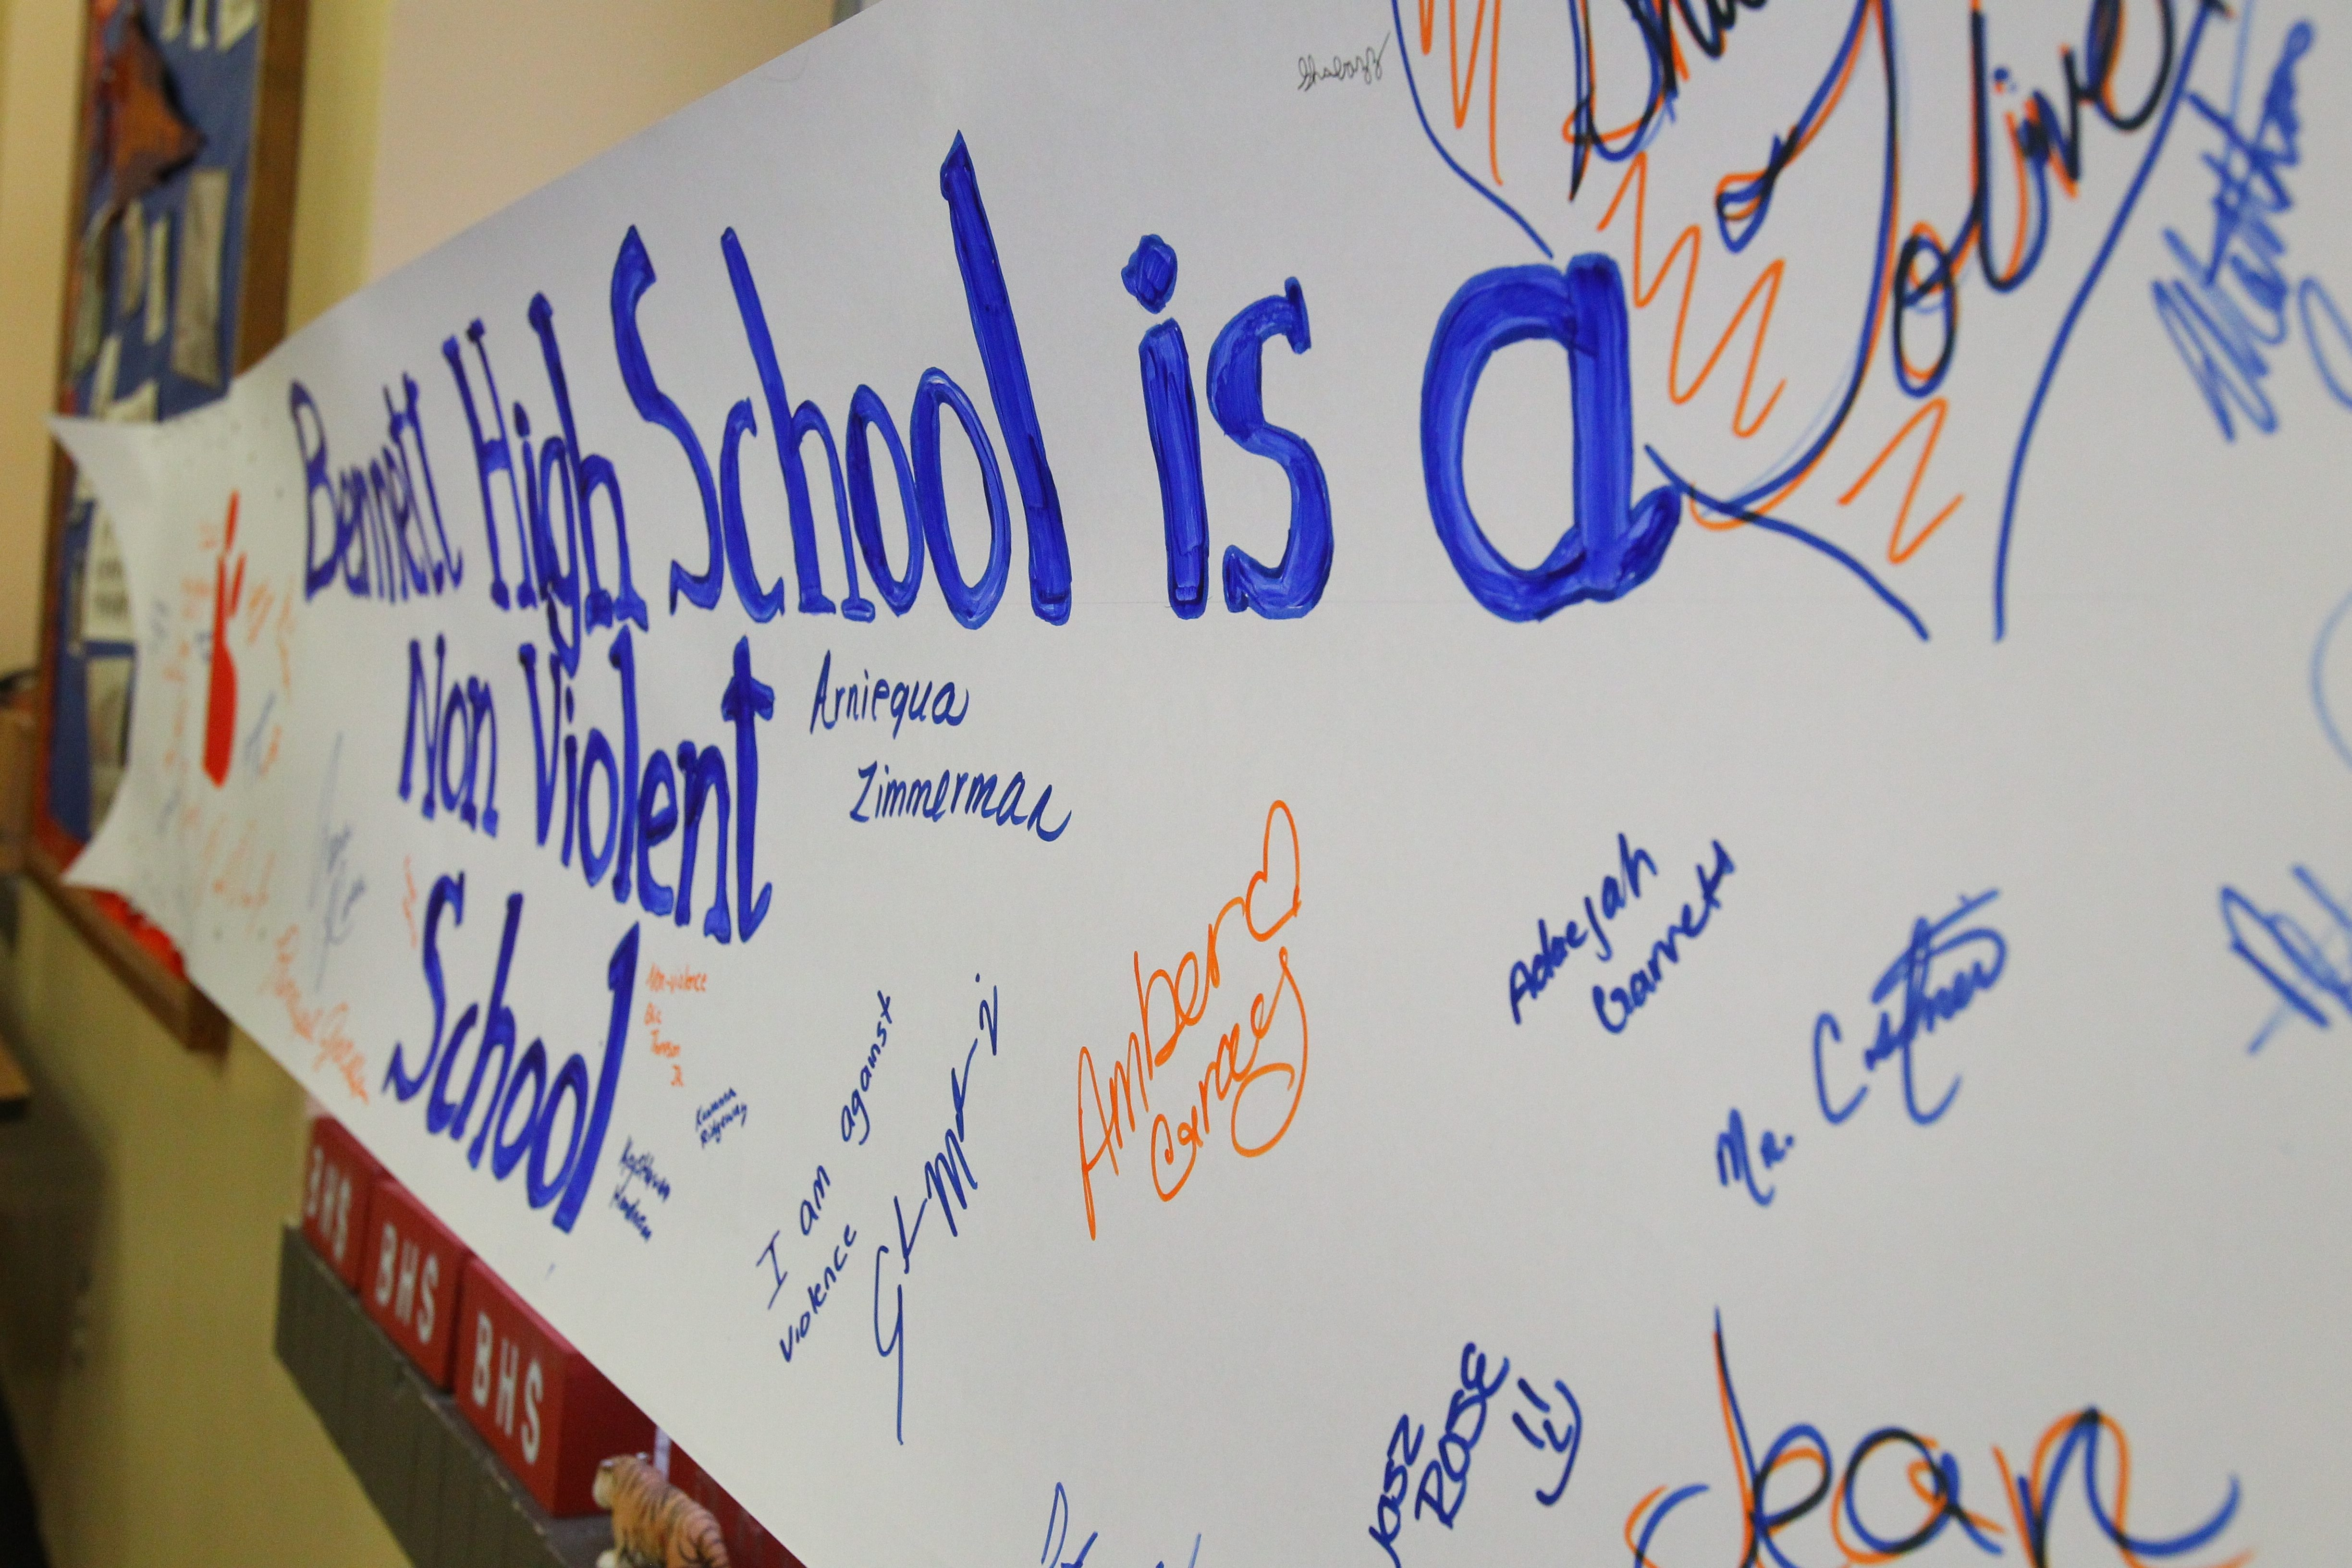 Banner signed by students at Bennett High School supports nonviolence is a response to the violent assault on a 66-year-old man in Shoshone Park by 10 Bennett students on May 16.